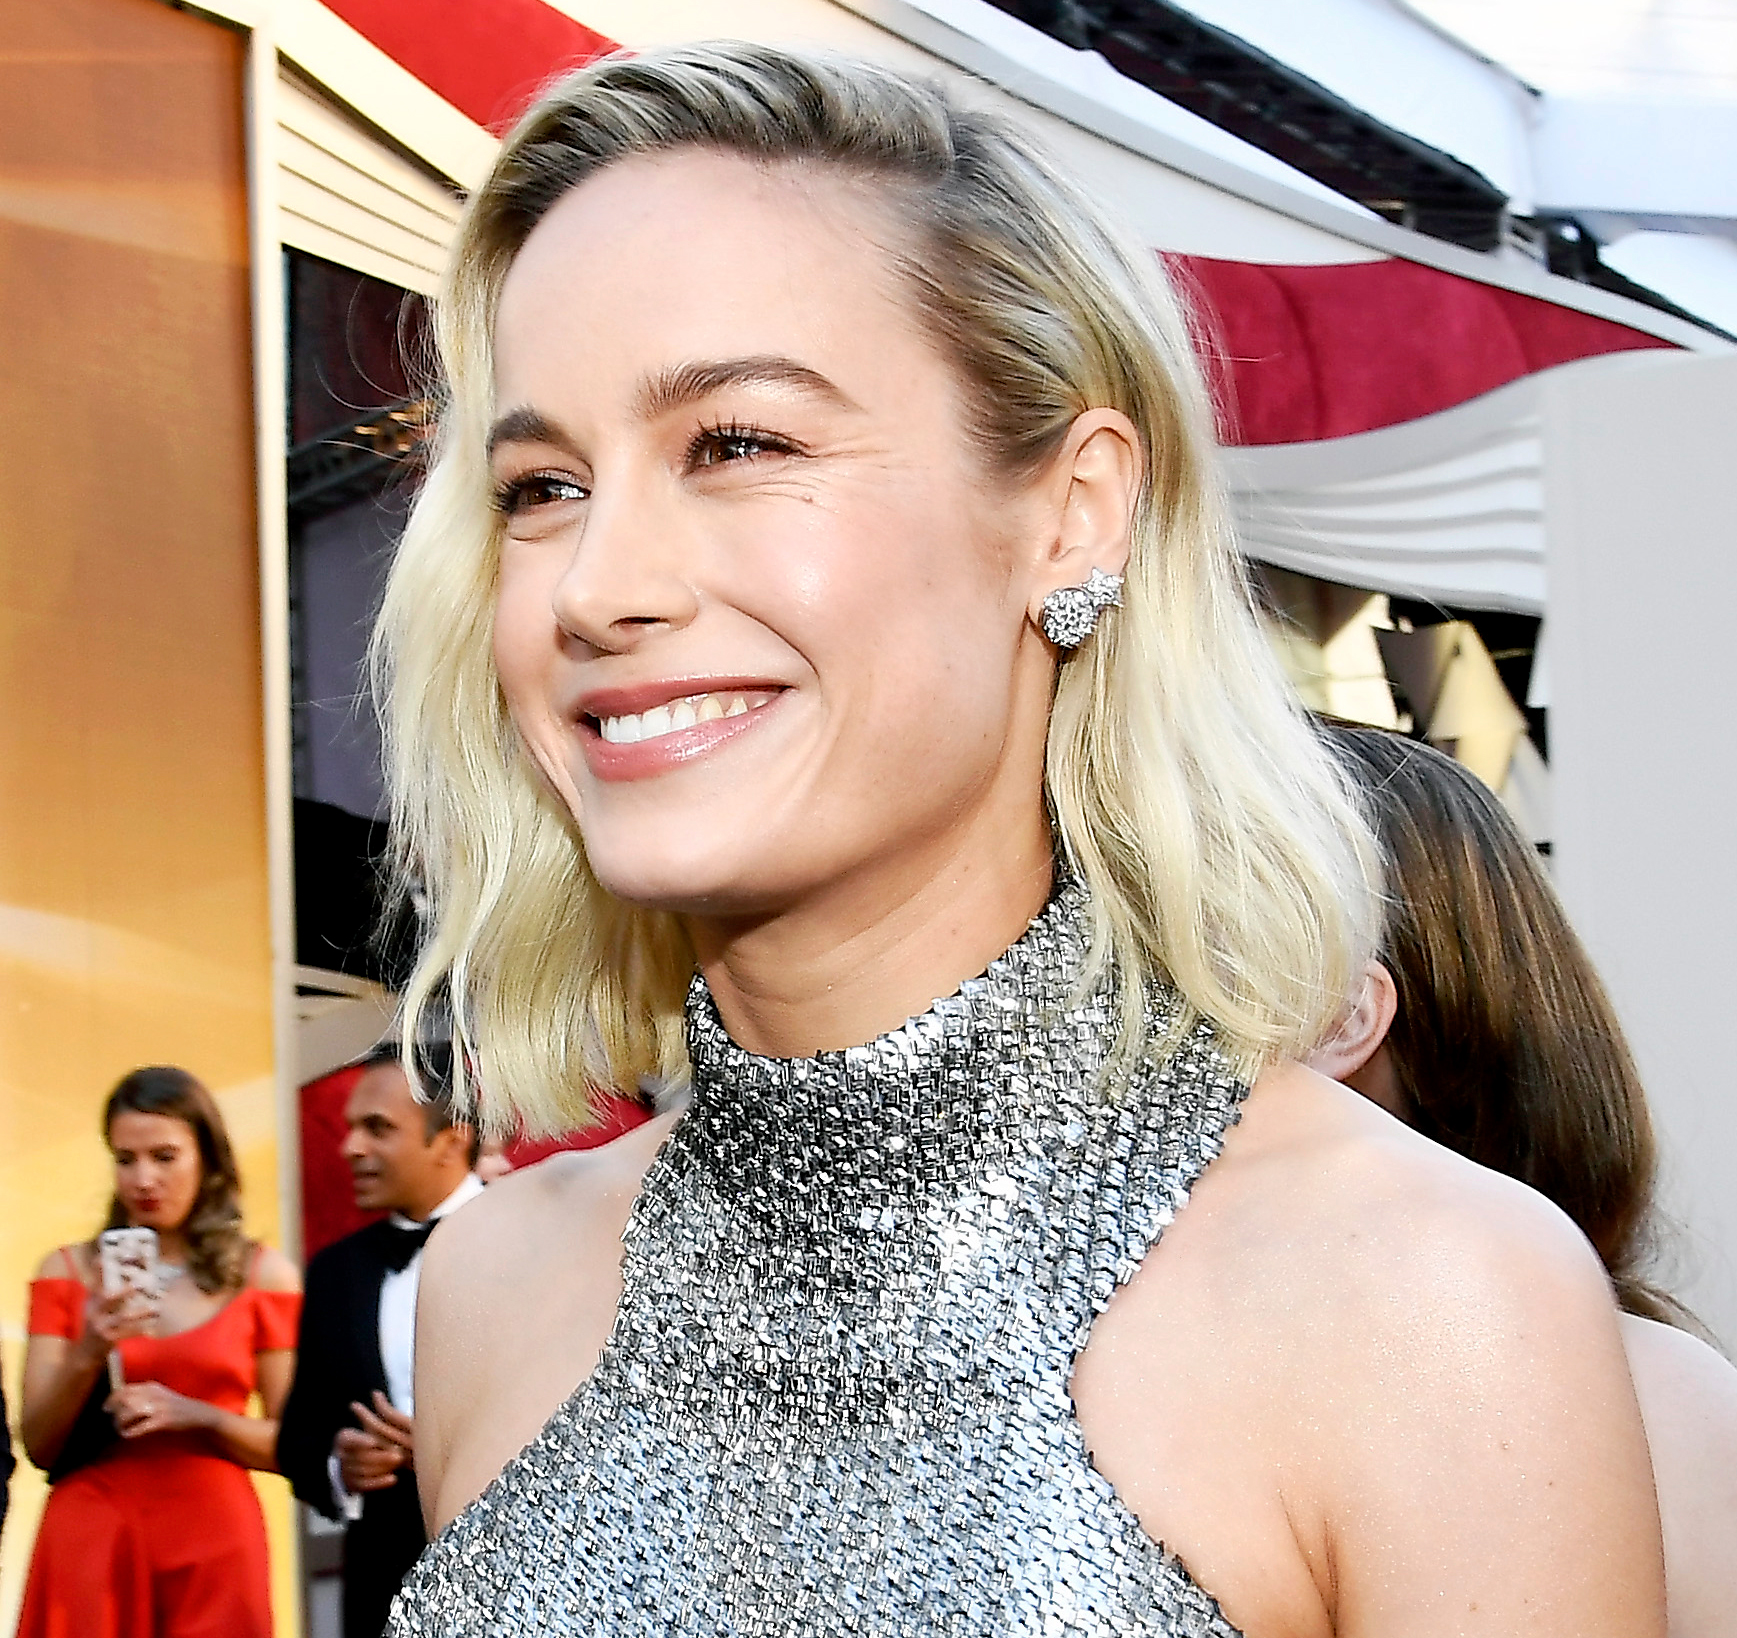 brie-larson-oscars-lipstick - Brie Larson attends the 91st Annual Academy Awards at Hollywood and Highland on February 24, 2019 in Hollywood, California.